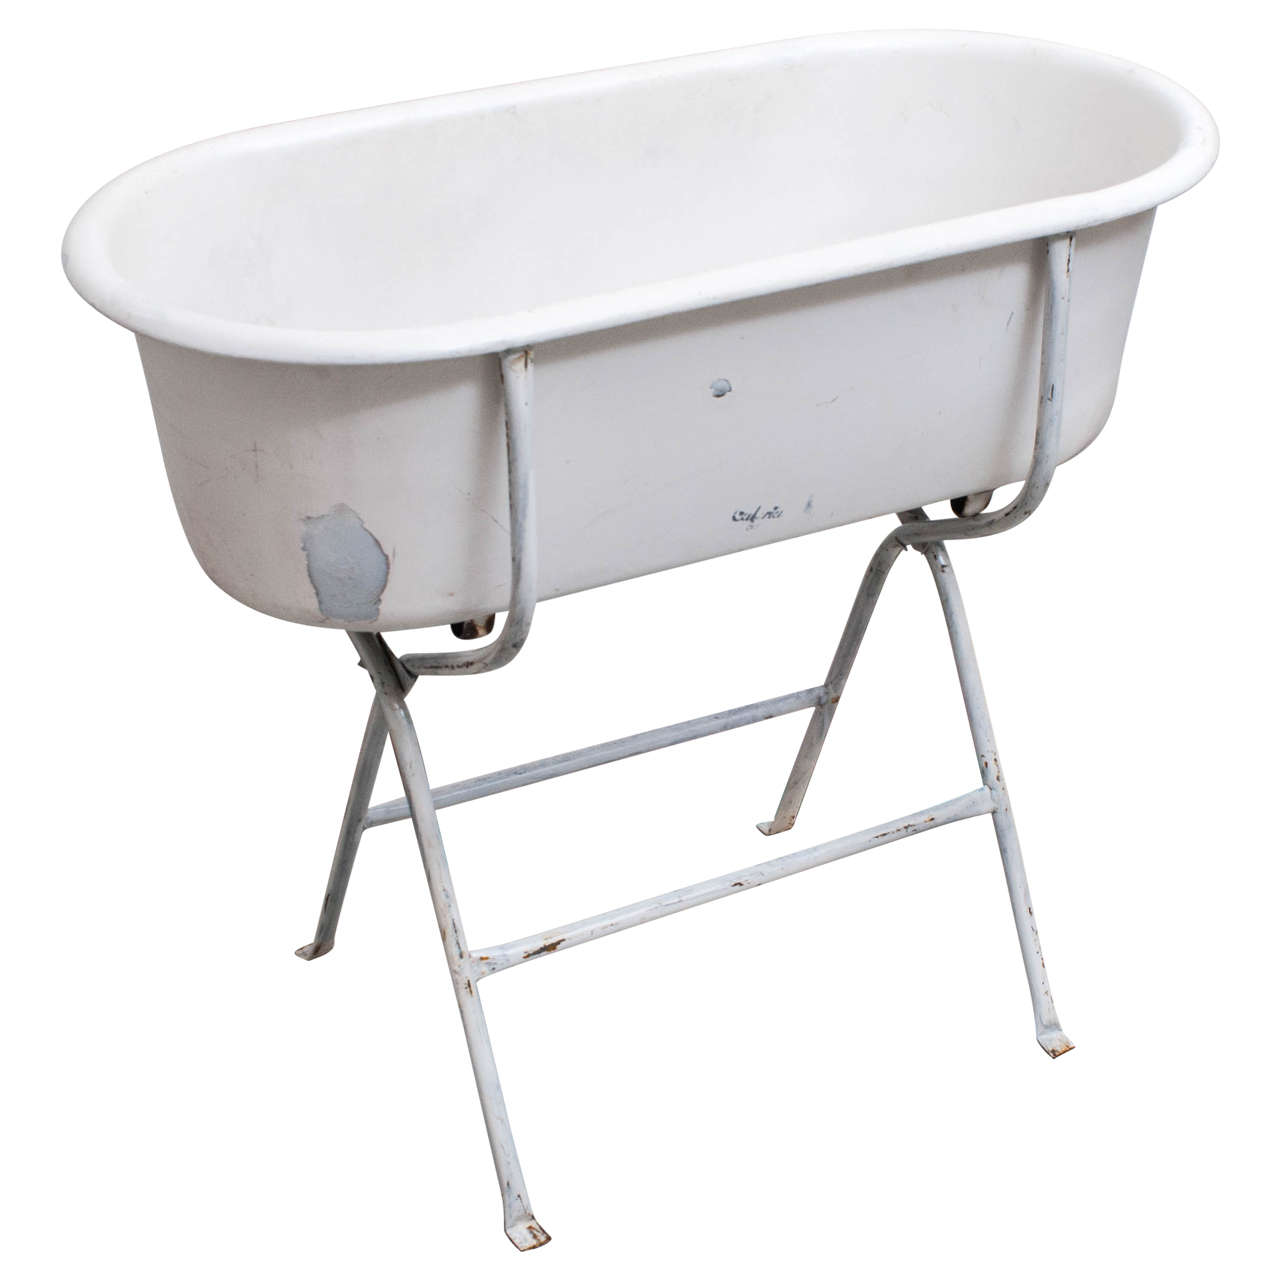 Baby Bath on Stand at 1stdibs